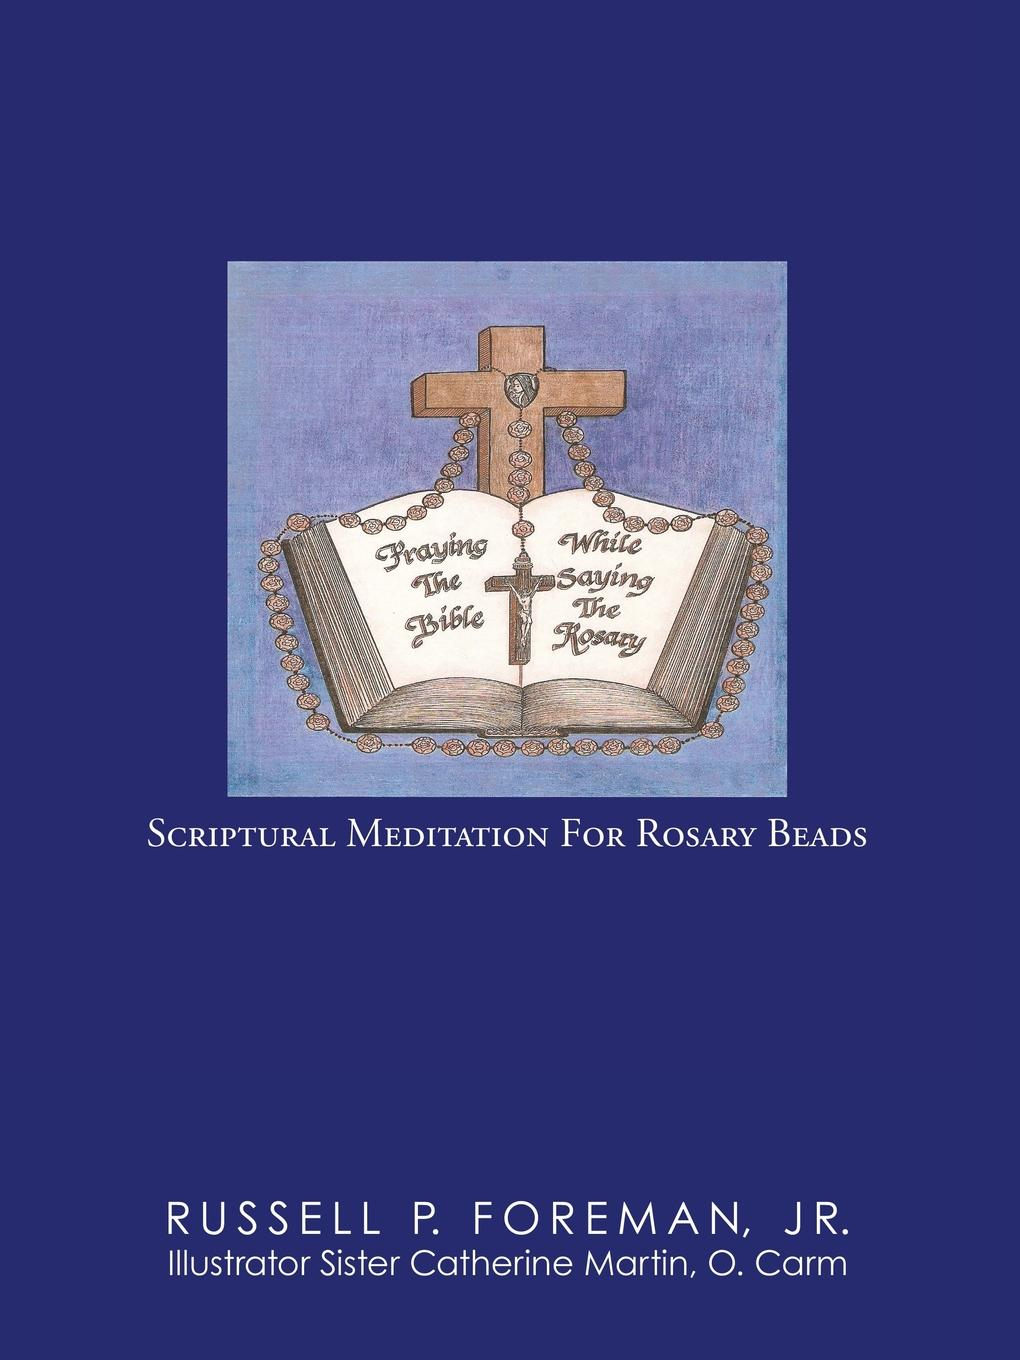 Jr. Russell P. Foreman Praying The Bible While Saying The Rosary. Scriptural Meditation For Rosary Beads mary russell the blessings of a good thick skirt